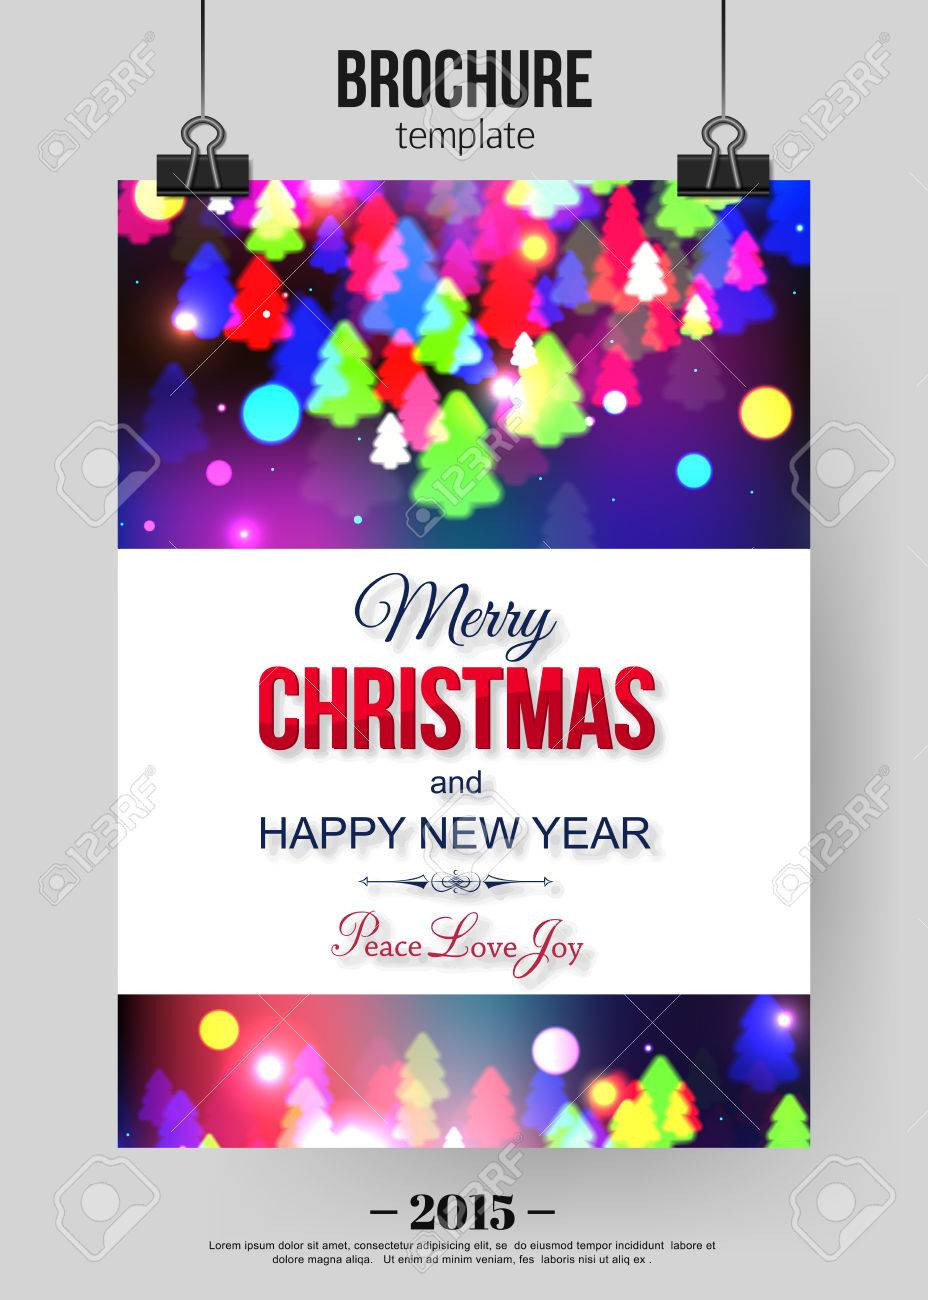 christmas brochure template abstract typographical flyer design christmas brochure template abstract typographical flyer design xmas tree lights and place for text